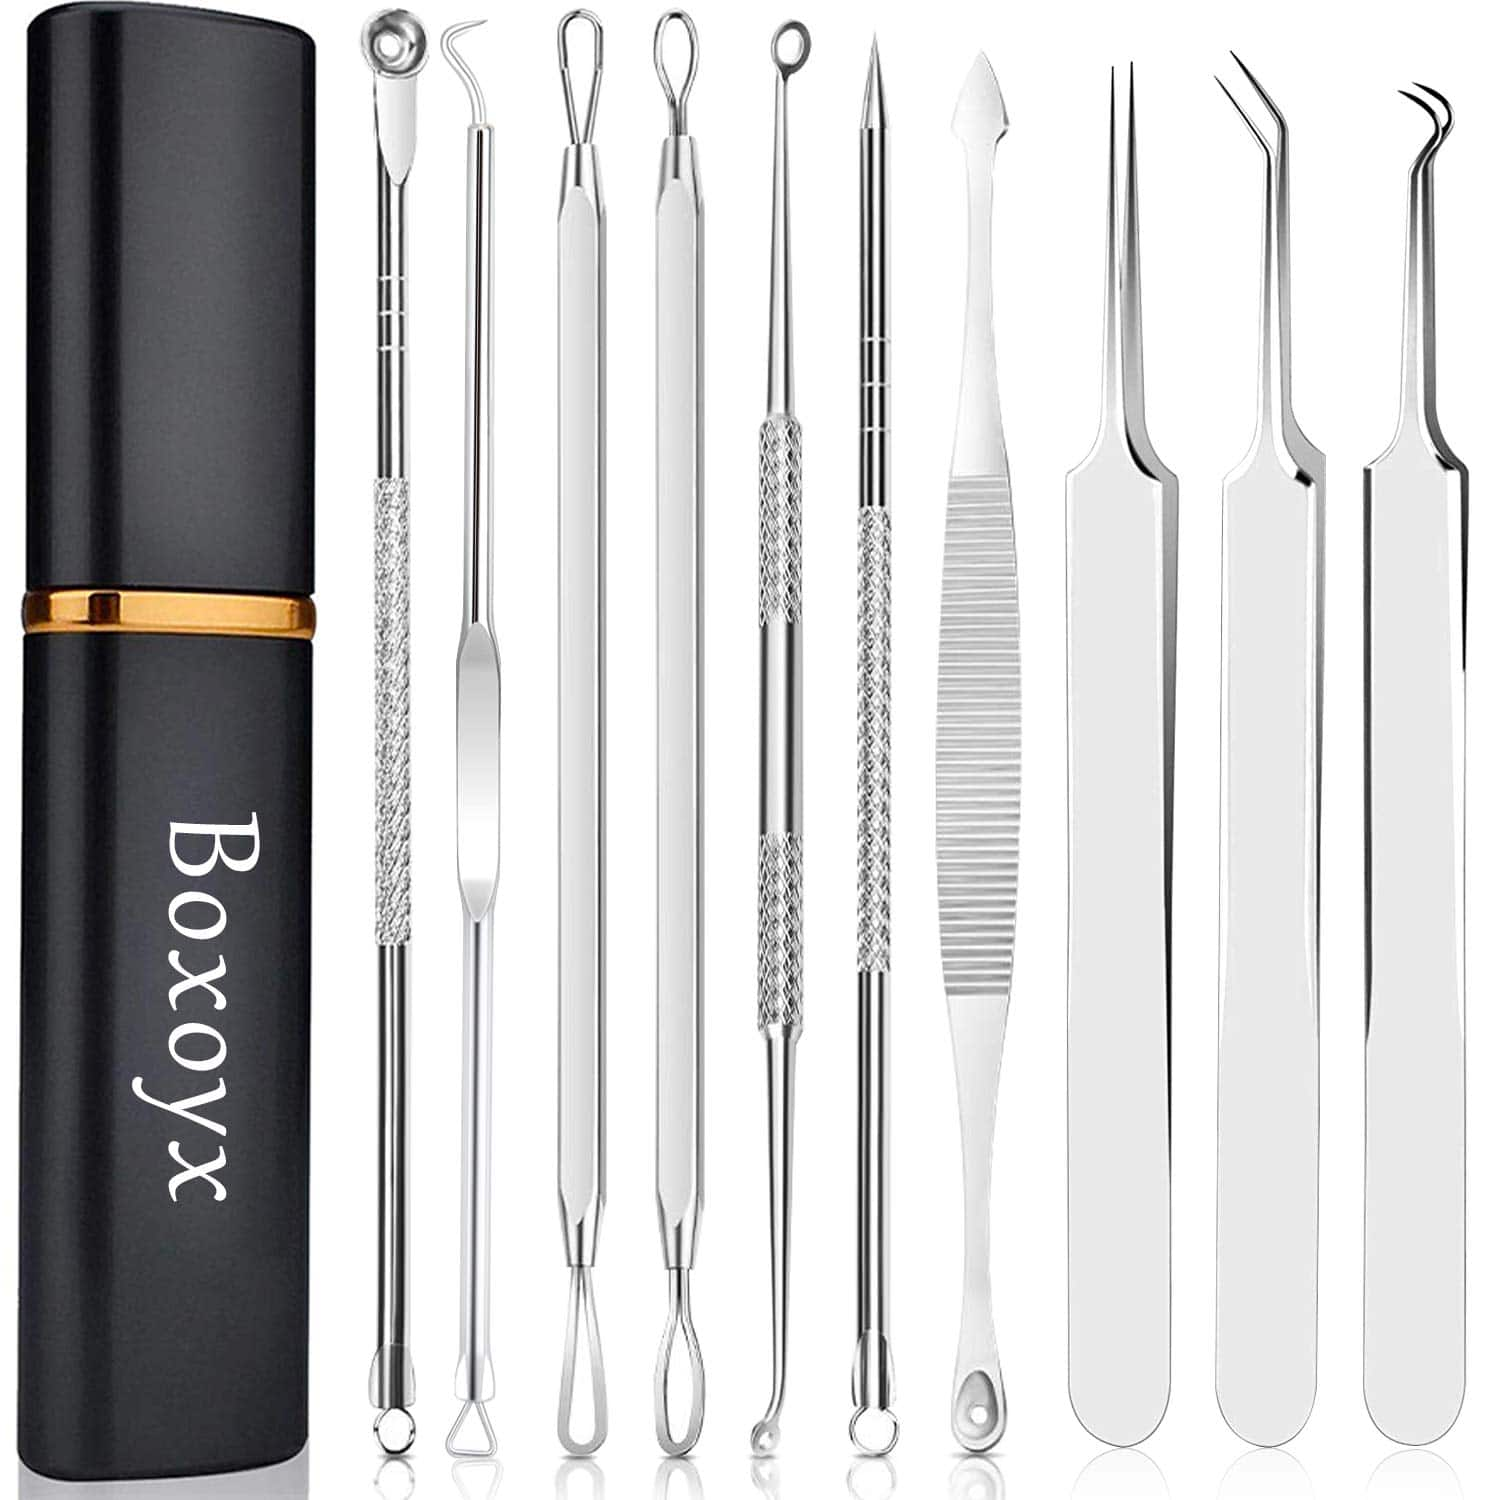 [Latest]Boxoyx 10 Pcs Professional Pimple Comedone Extractor